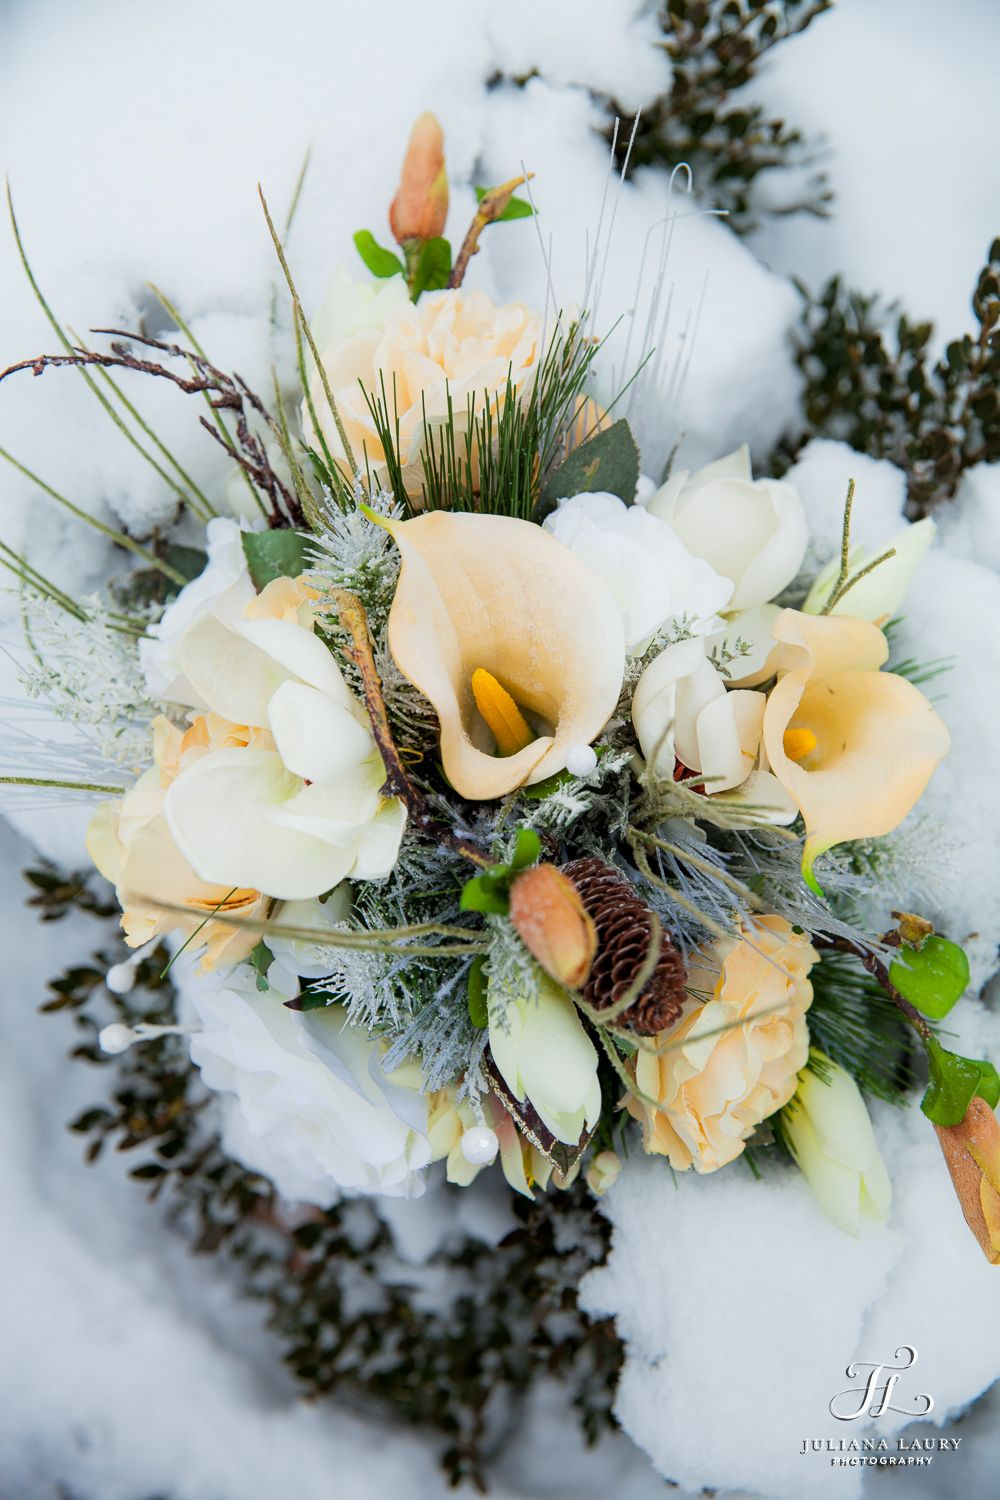 Winter Wedding Flowers The Silk Flower Bouquet I Had Made For Our